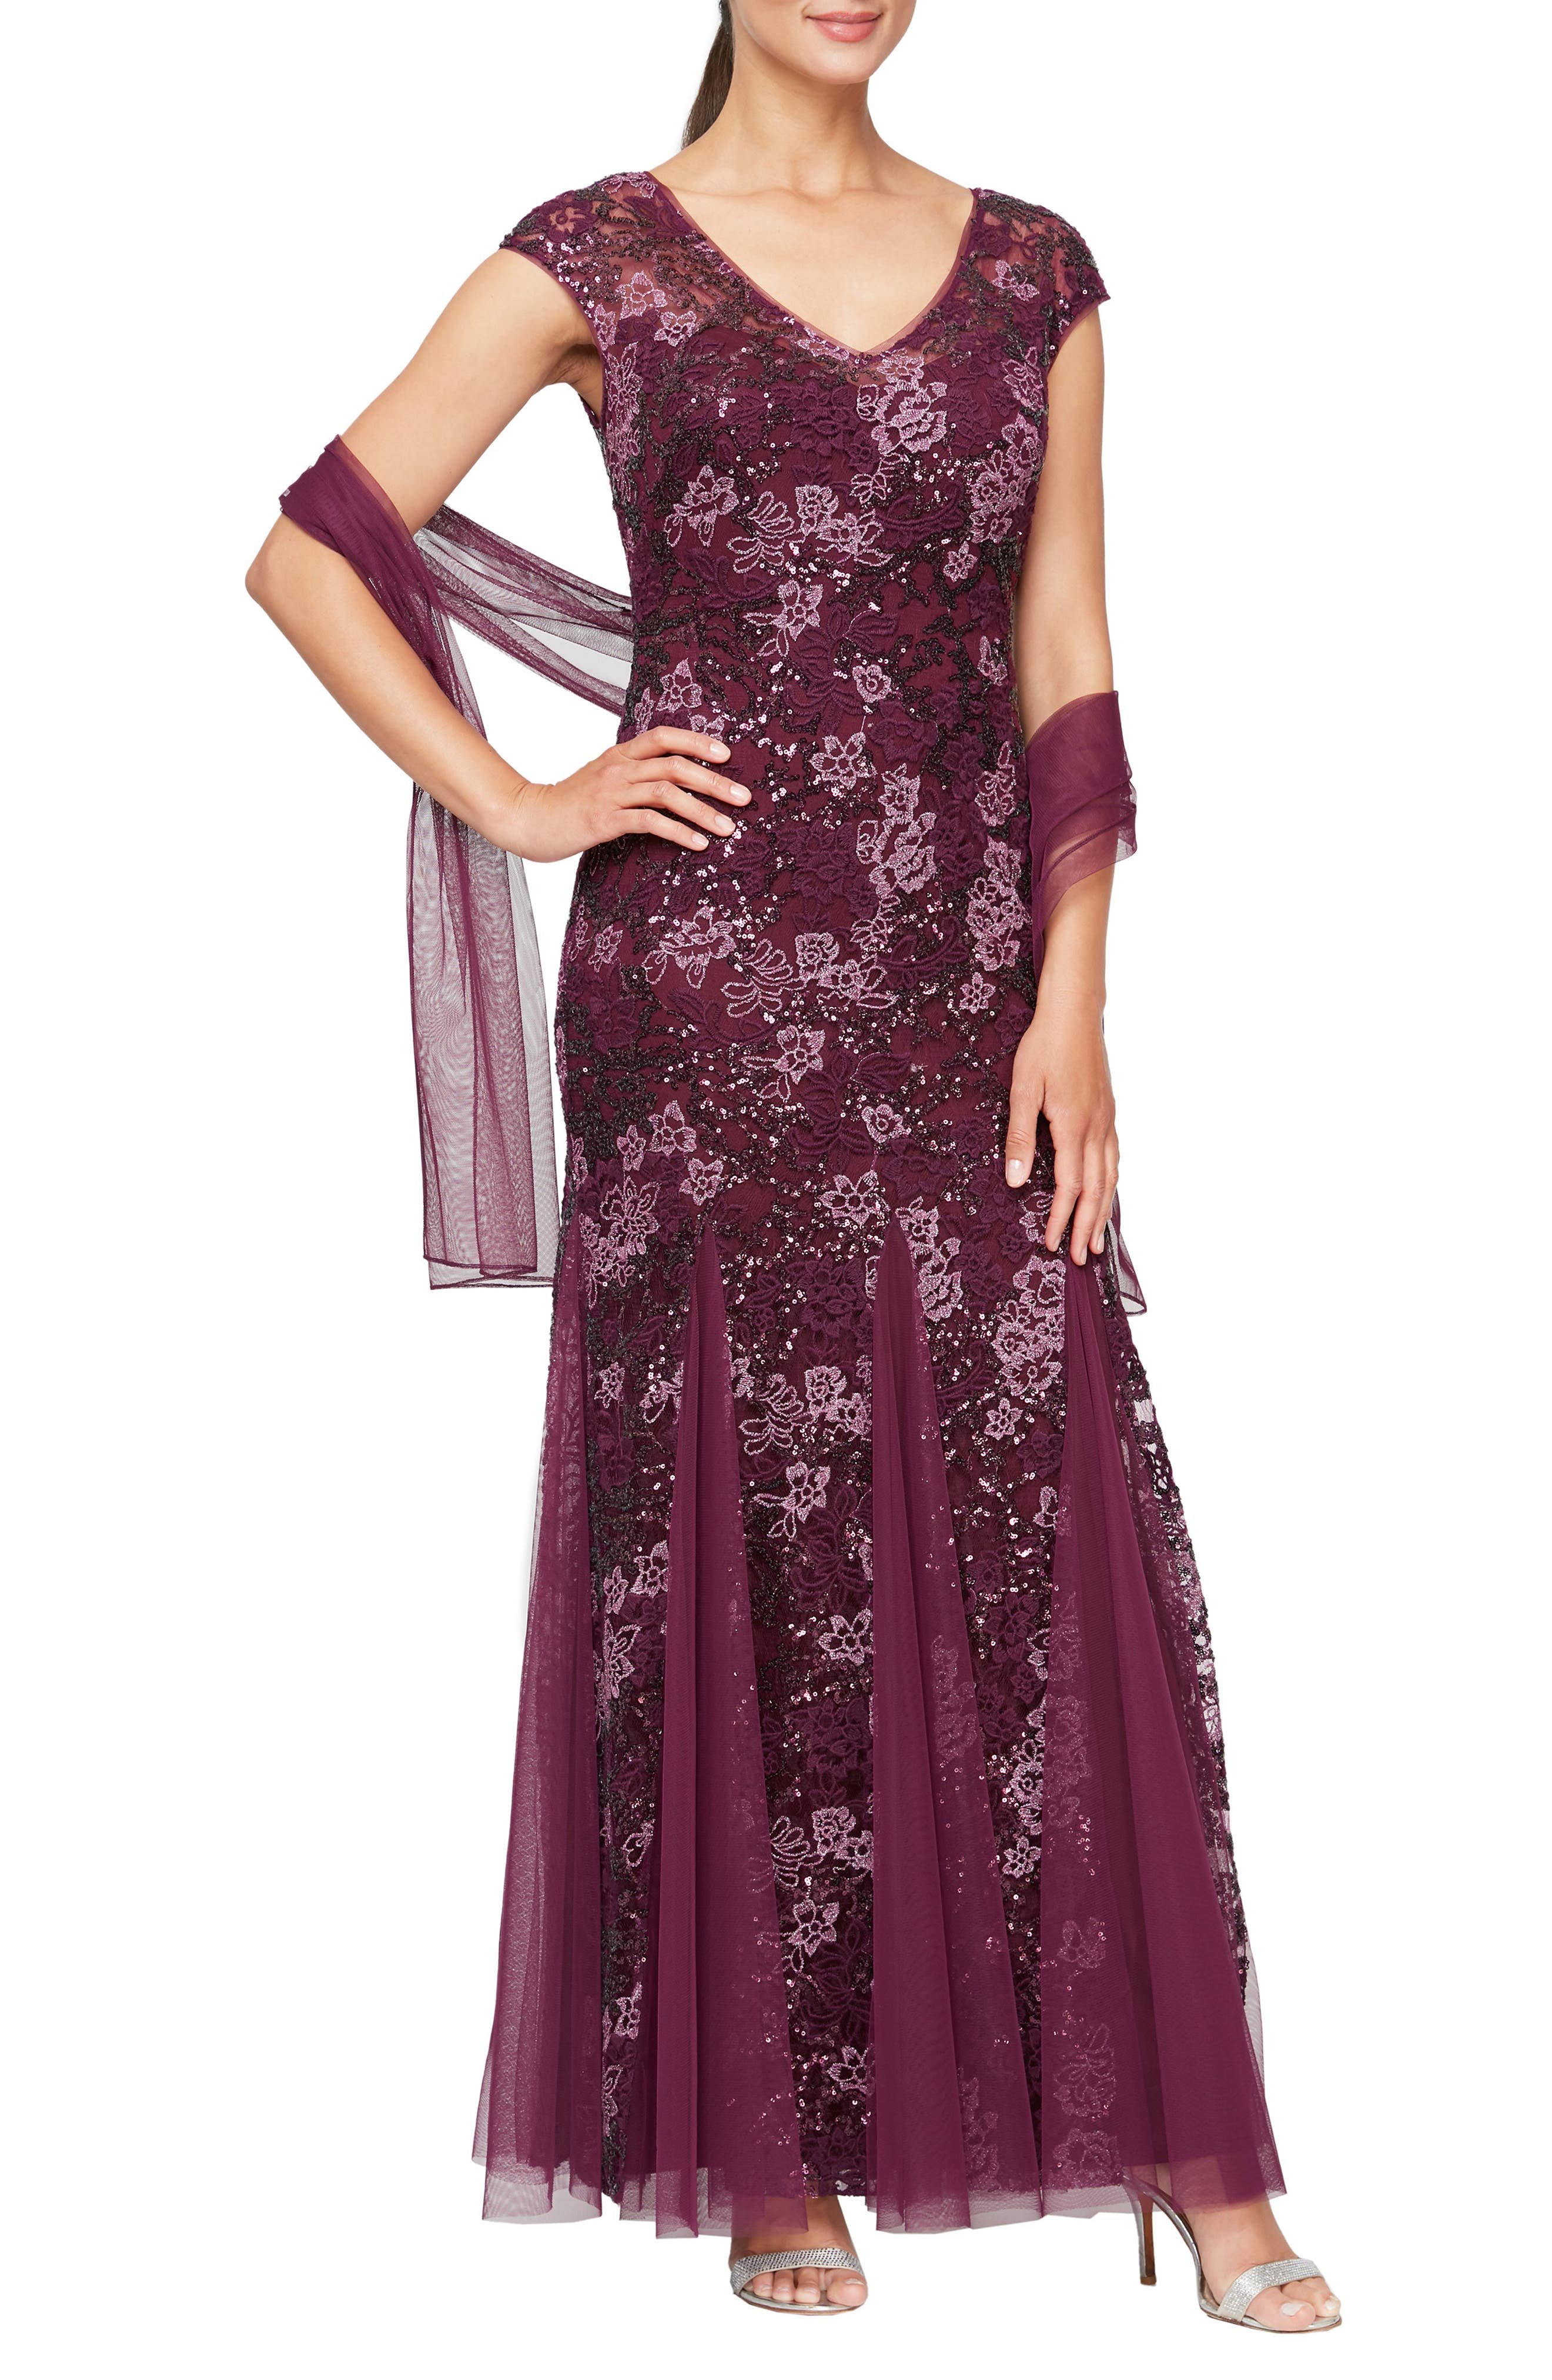 1930s Evening Dresses | Old Hollywood Silver Screen Dresses Womens Alex Evenings Sequin Embroidered Trumpet Gown Size 8 - Purple $259.00 AT vintagedancer.com